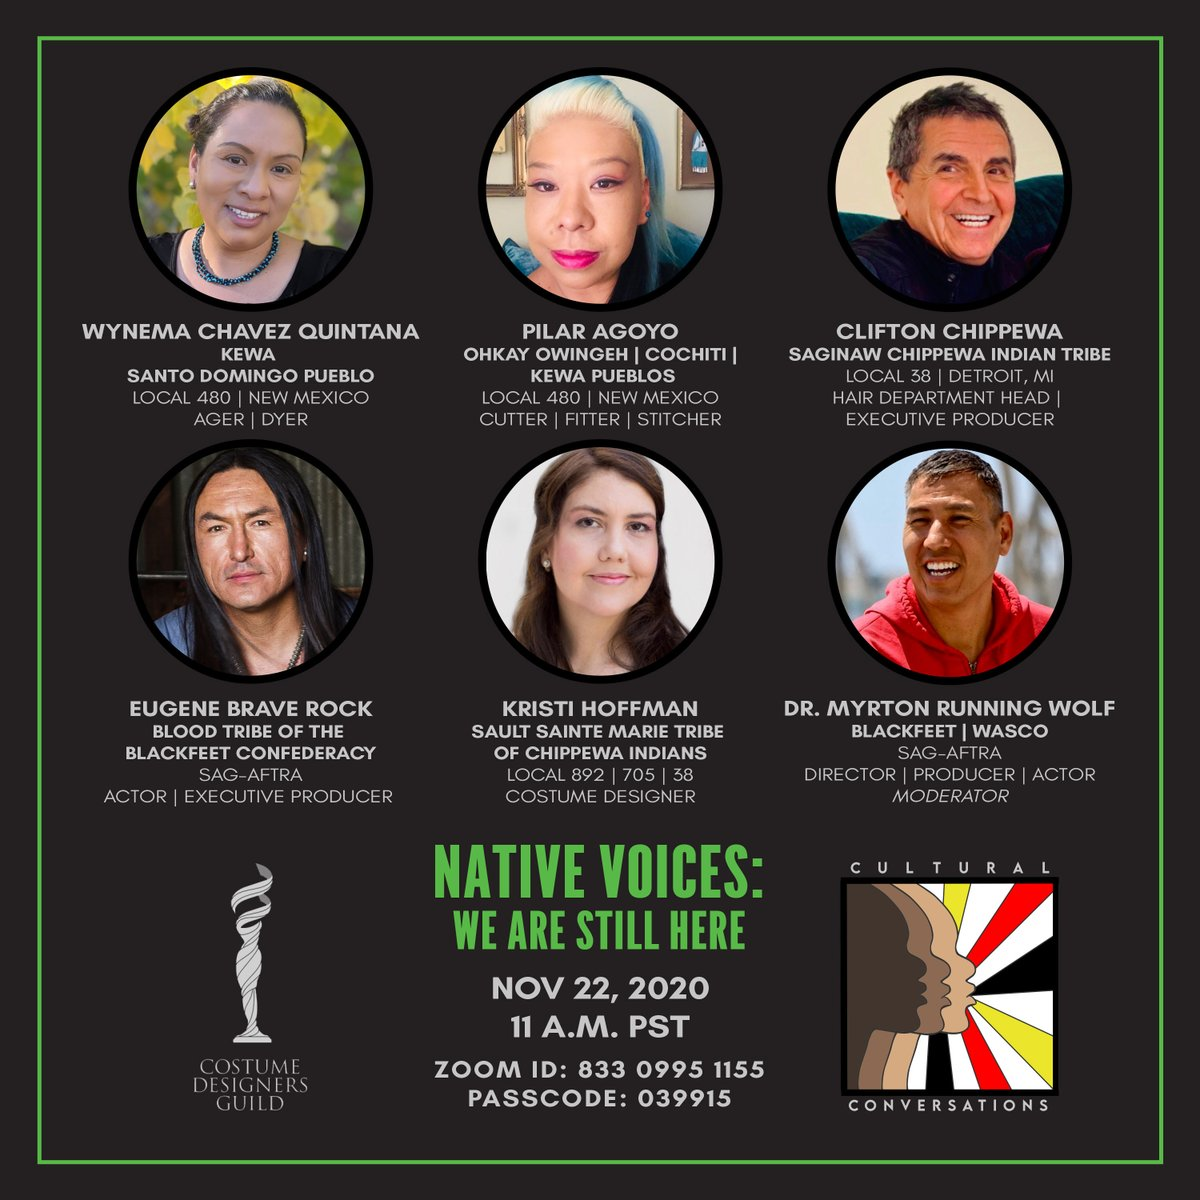 The 4th installment of The Costume Designers Guild Cultural Conversations takes place on Nov. 22 at 11 a.m. PST featuring a Native Voices zoom panel with talented union kin from @CDGlocal892, @MPC705, Local 480, @iatse038 & @sagaftra.